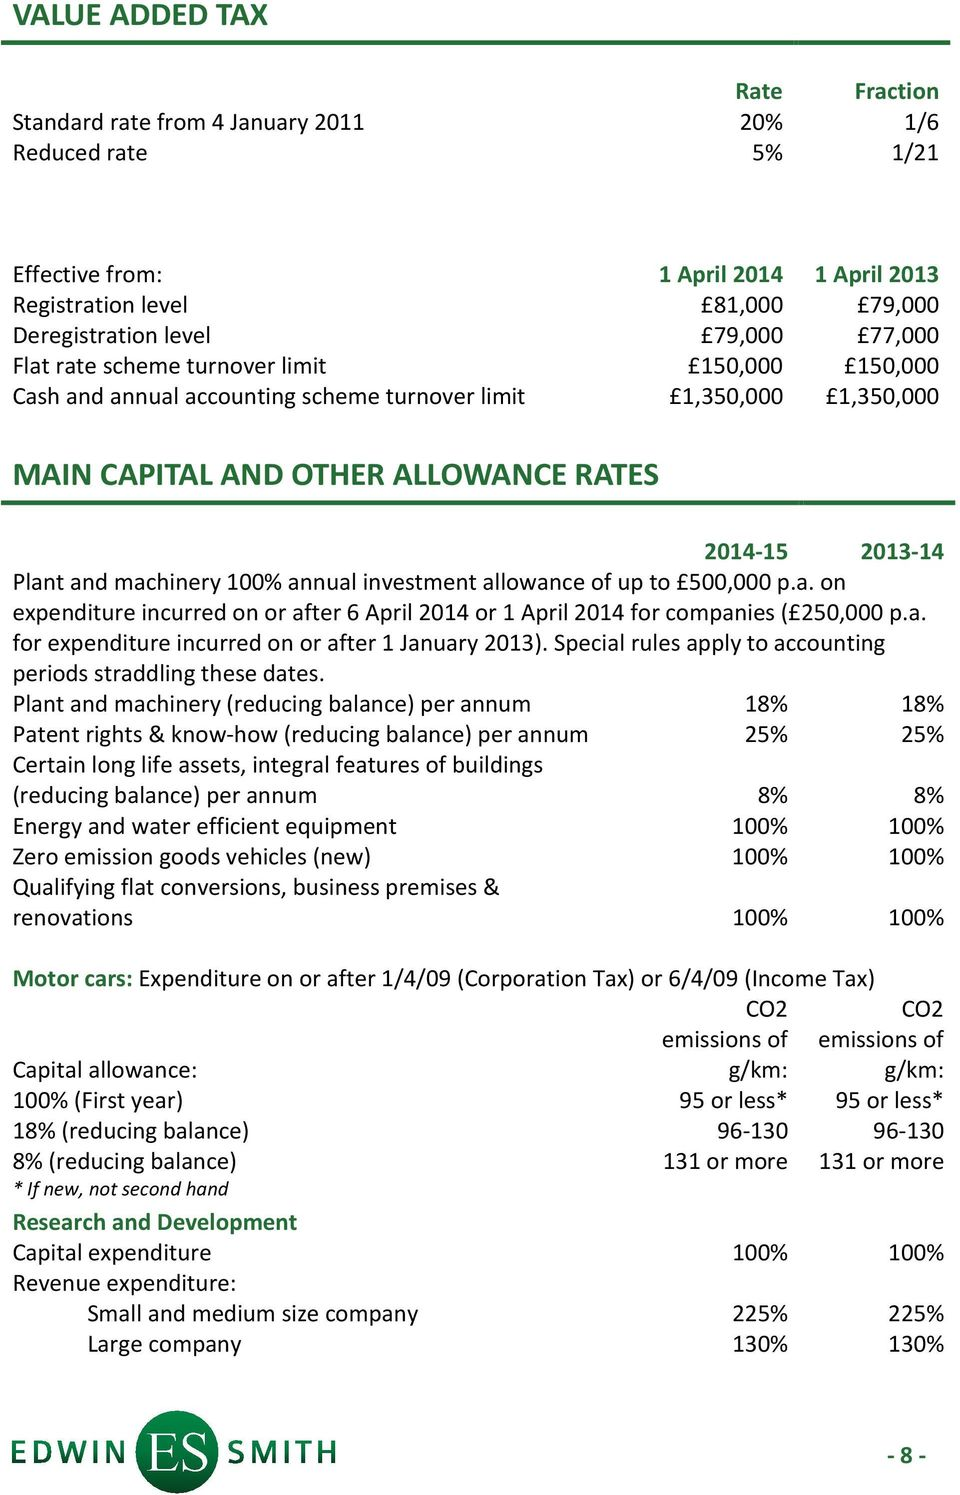 investment allowance of up to 500,000 p.a. on expenditure incurred on or after 6 April 2014 or 1 April 2014 for companies ( 250,000 p.a. for expenditure incurred on or after 1 January 2013).